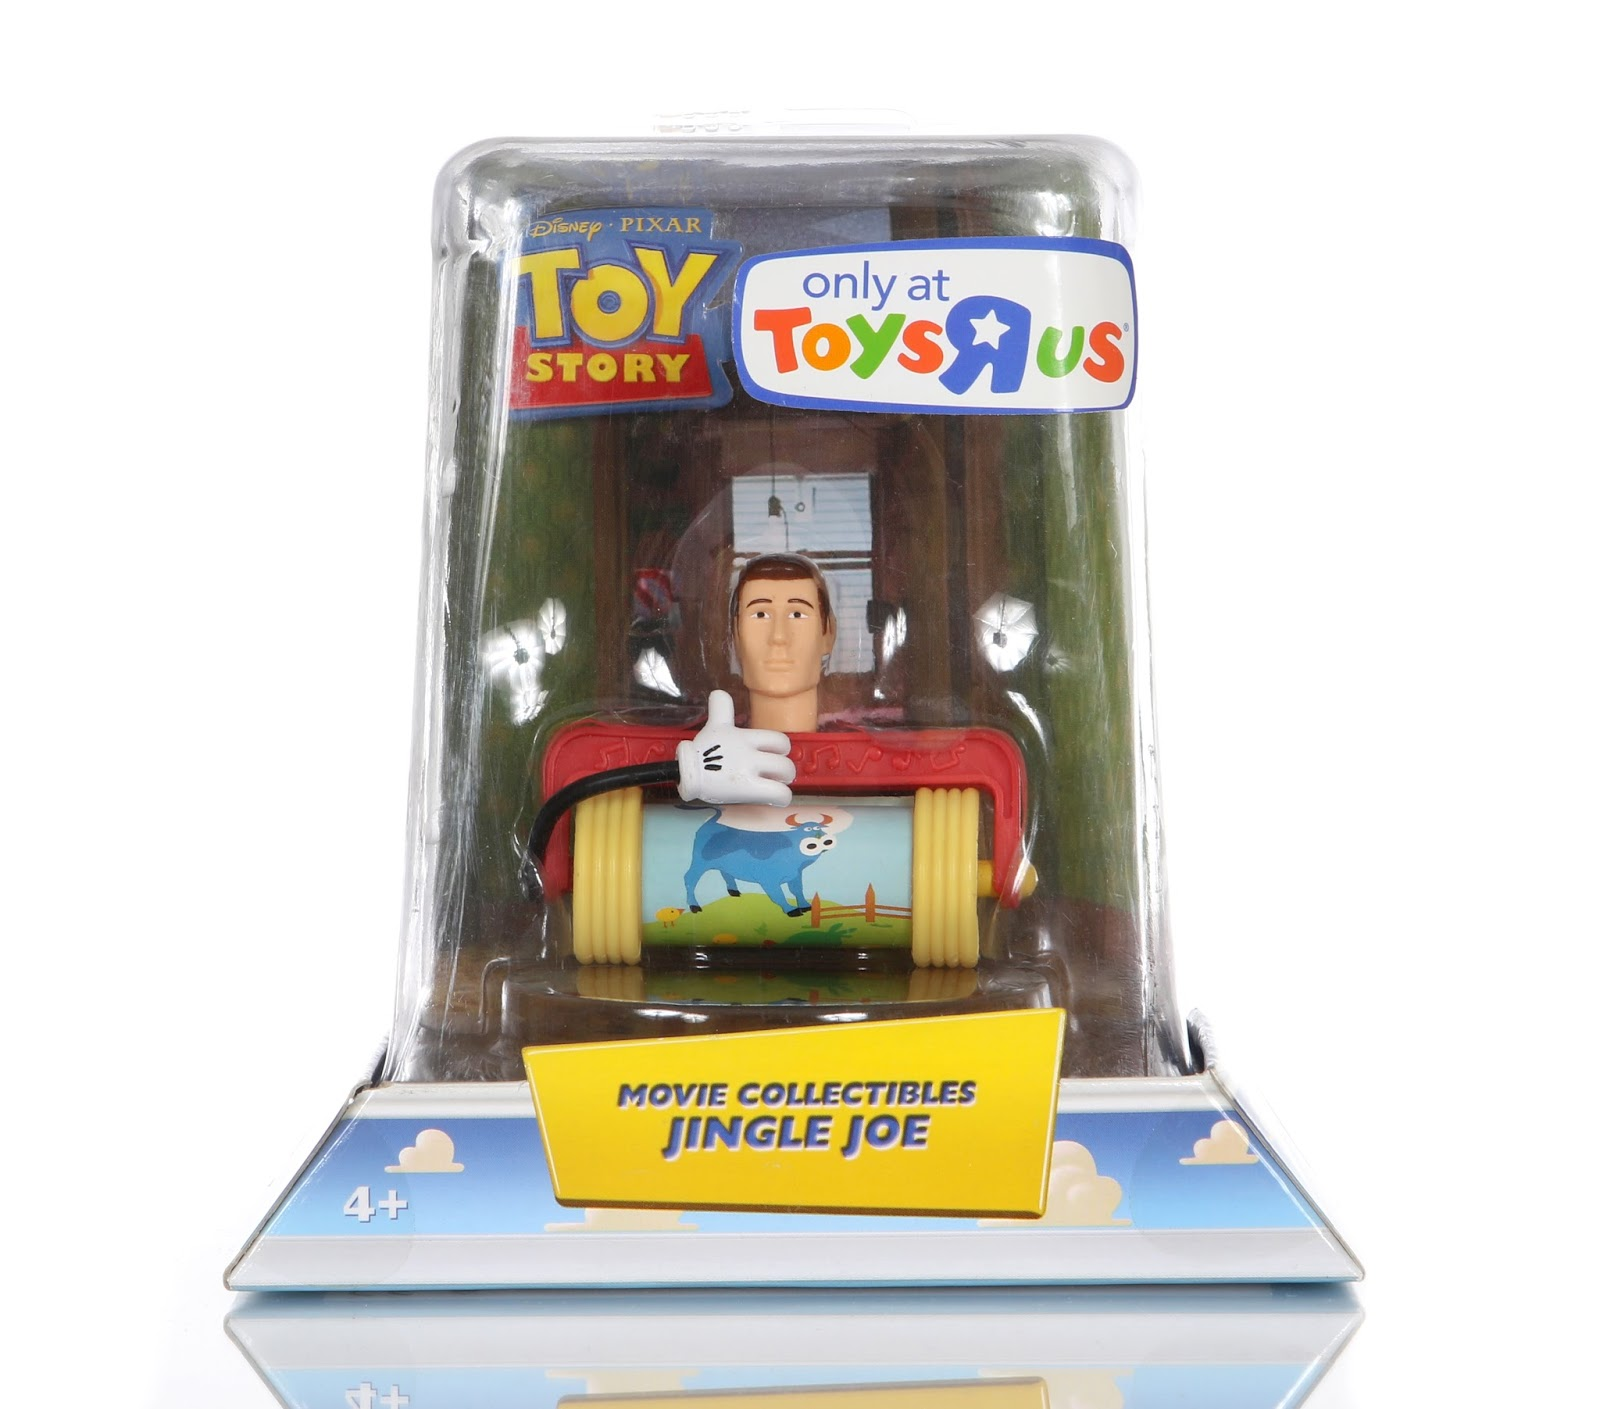 toy story sid's toys jingle joe